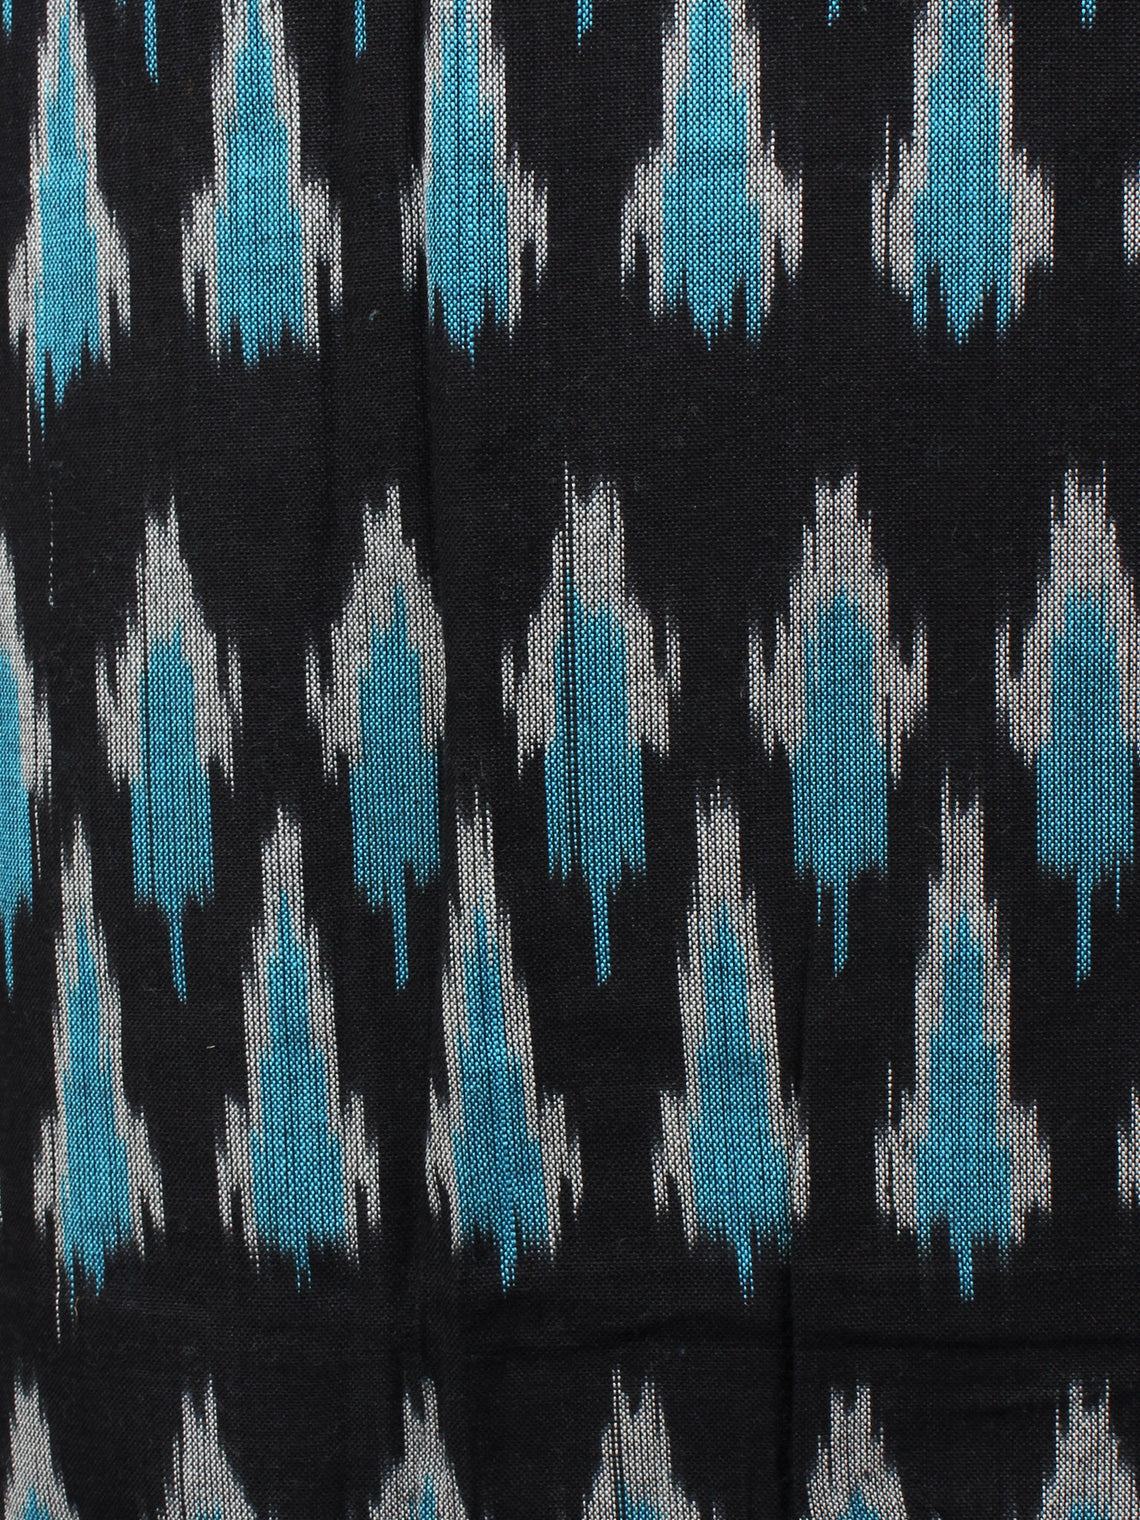 Azure Black White Ikat Handwoven Cotton Suit Fabric Set of 3 - S1002013